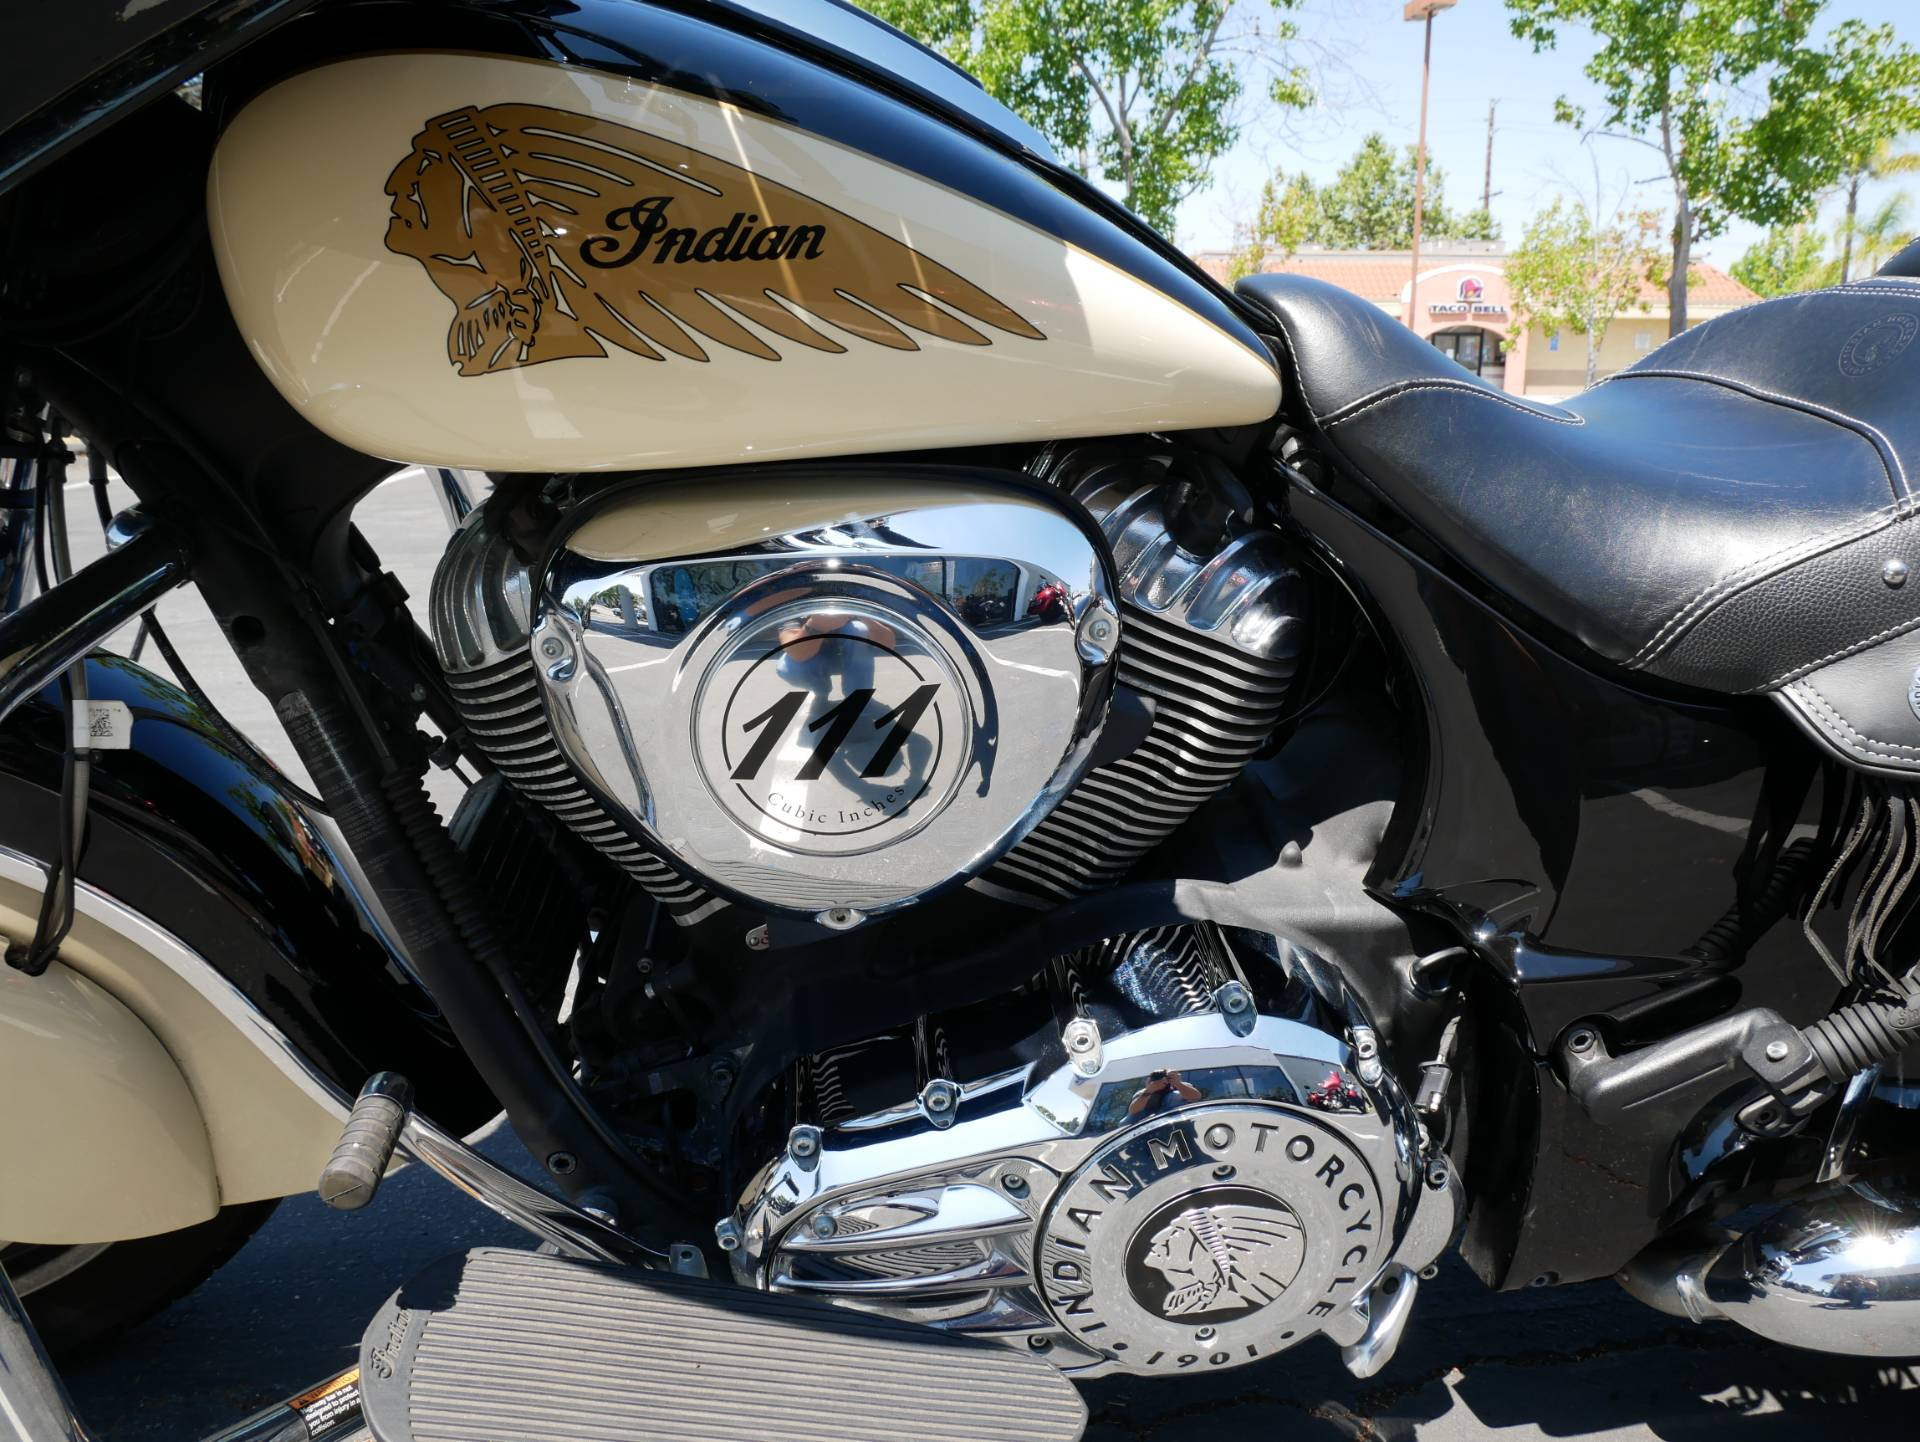 2019 Indian Chieftain® Classic ABS in San Diego, California - Photo 10